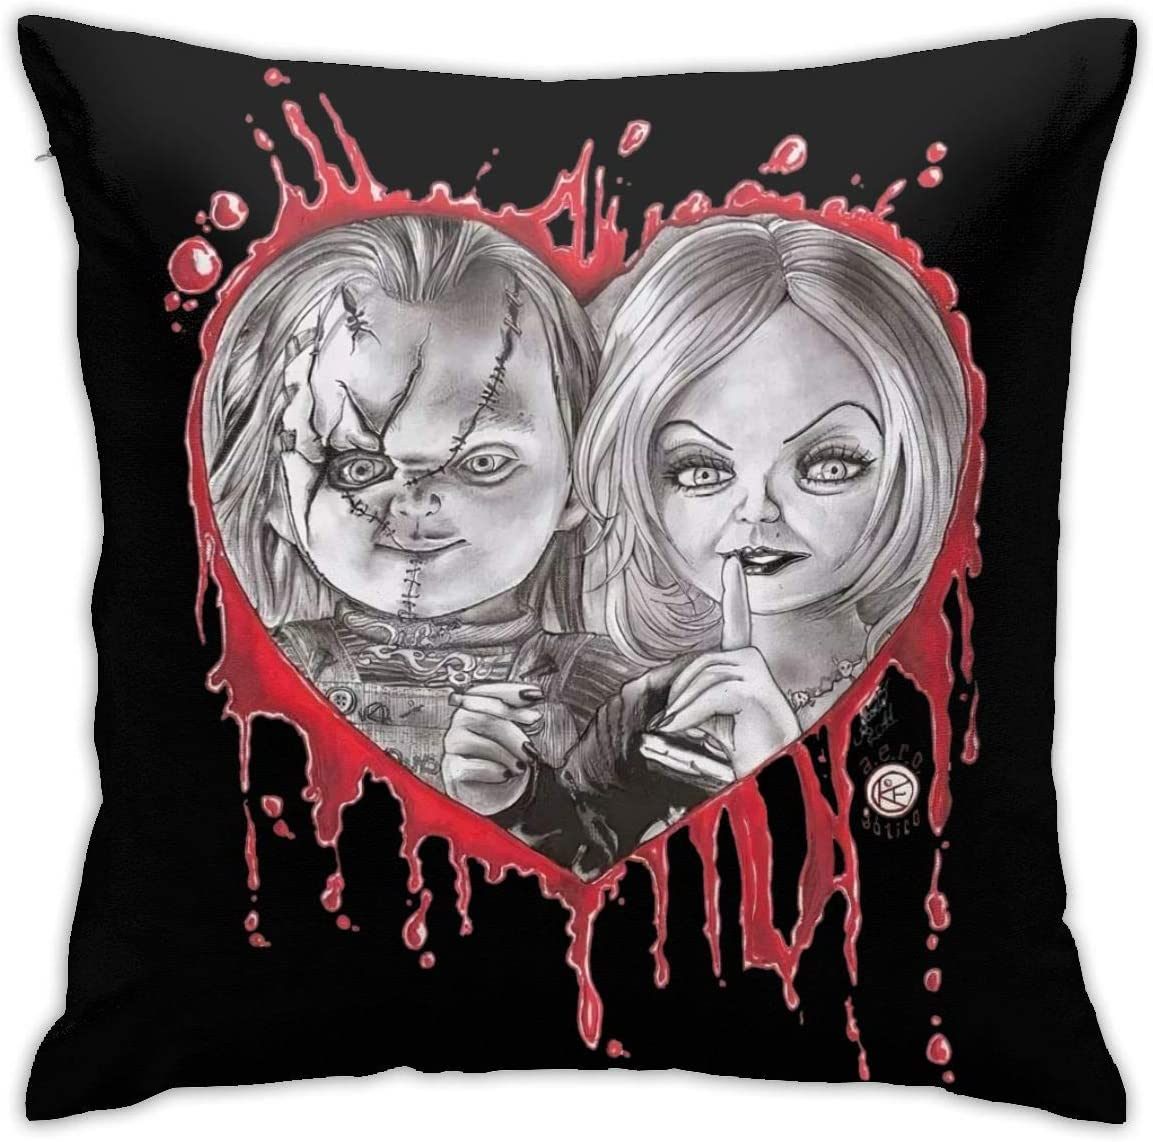 Kaopey Chucky Doll Decorative Square Throw Pillow Covers Set Cushion Case for Sofa Bedroom Car 18 X 18 in